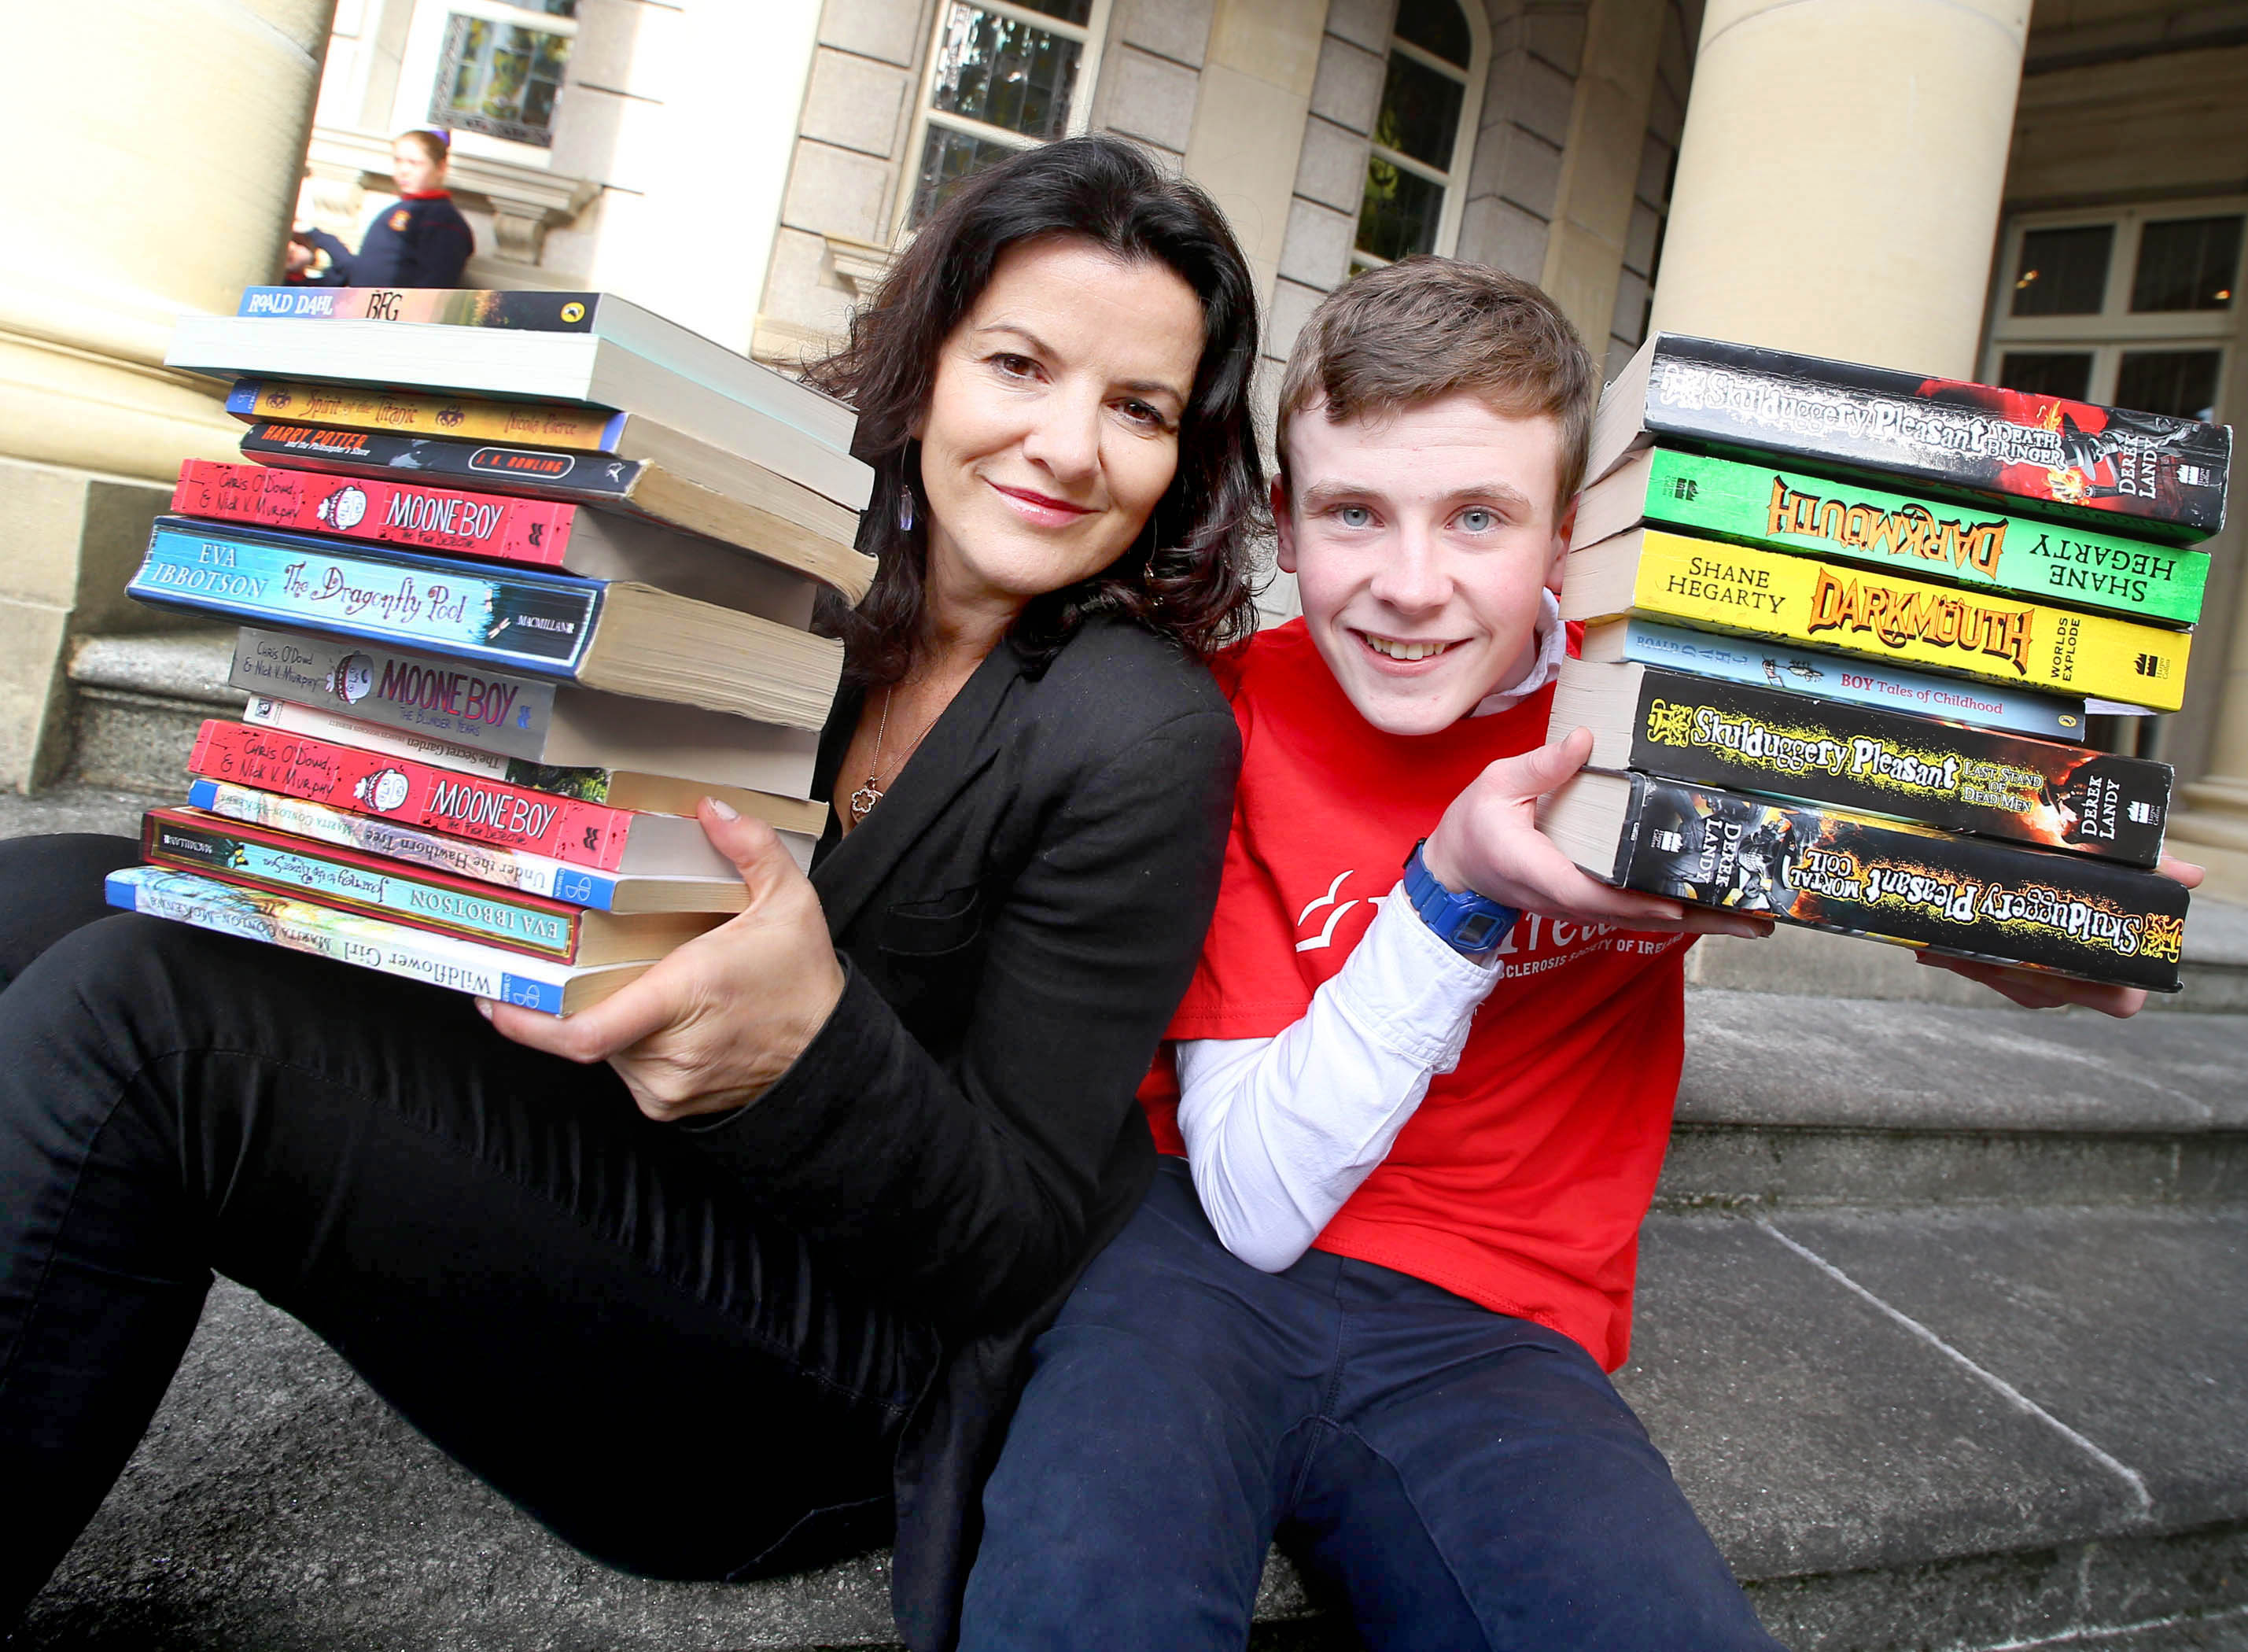 20/9/16 ***NO REPRO FEE*** Deirdre O'Kane and David Rawle launch the 29th MS Readathon with up to 15,000 young readers helping people with Multiple Sclerosis Ireland, Tuesday September 20th 2016. The 29th MS Readathon launched today with Deirdre O'Kane and Moone boy actor David Rawle, joining MS ambassador family Gerard Murphy, who is living with MS, and his 17-year-old daughter Lauren. Lauren invented a smart device that helps people with MS grip and hold objects, as a transition year student which put her in the running for $4m worth of prizes and scholarships competing with students from all over the world. Lauren took part in MS Readathon as a primary school student. Last year more than 15,000 children took part in the month-long sponsored reading campaign to raise funds for vital services for people with Multiple Sclerosis in their region. The reading month takes place from Friday October 7th to Monday November 7th 2016. Please visit www.msreadathon.ie for more information. Pic: Marc O'Sullivan